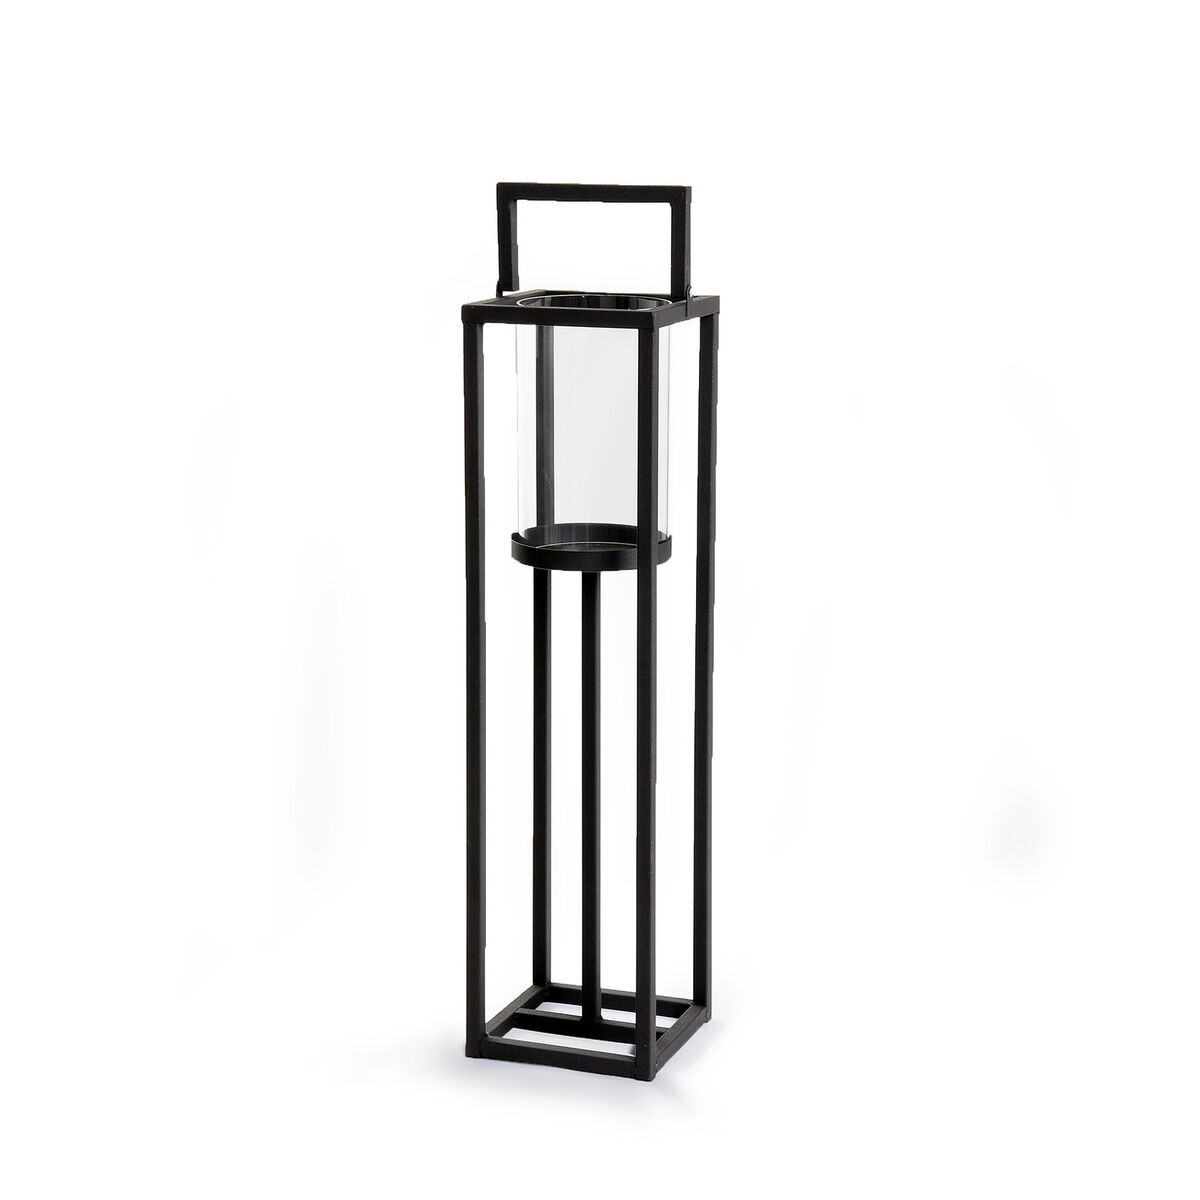 windlicht metallgestell braun ca 155x155x69cm depot de. Black Bedroom Furniture Sets. Home Design Ideas